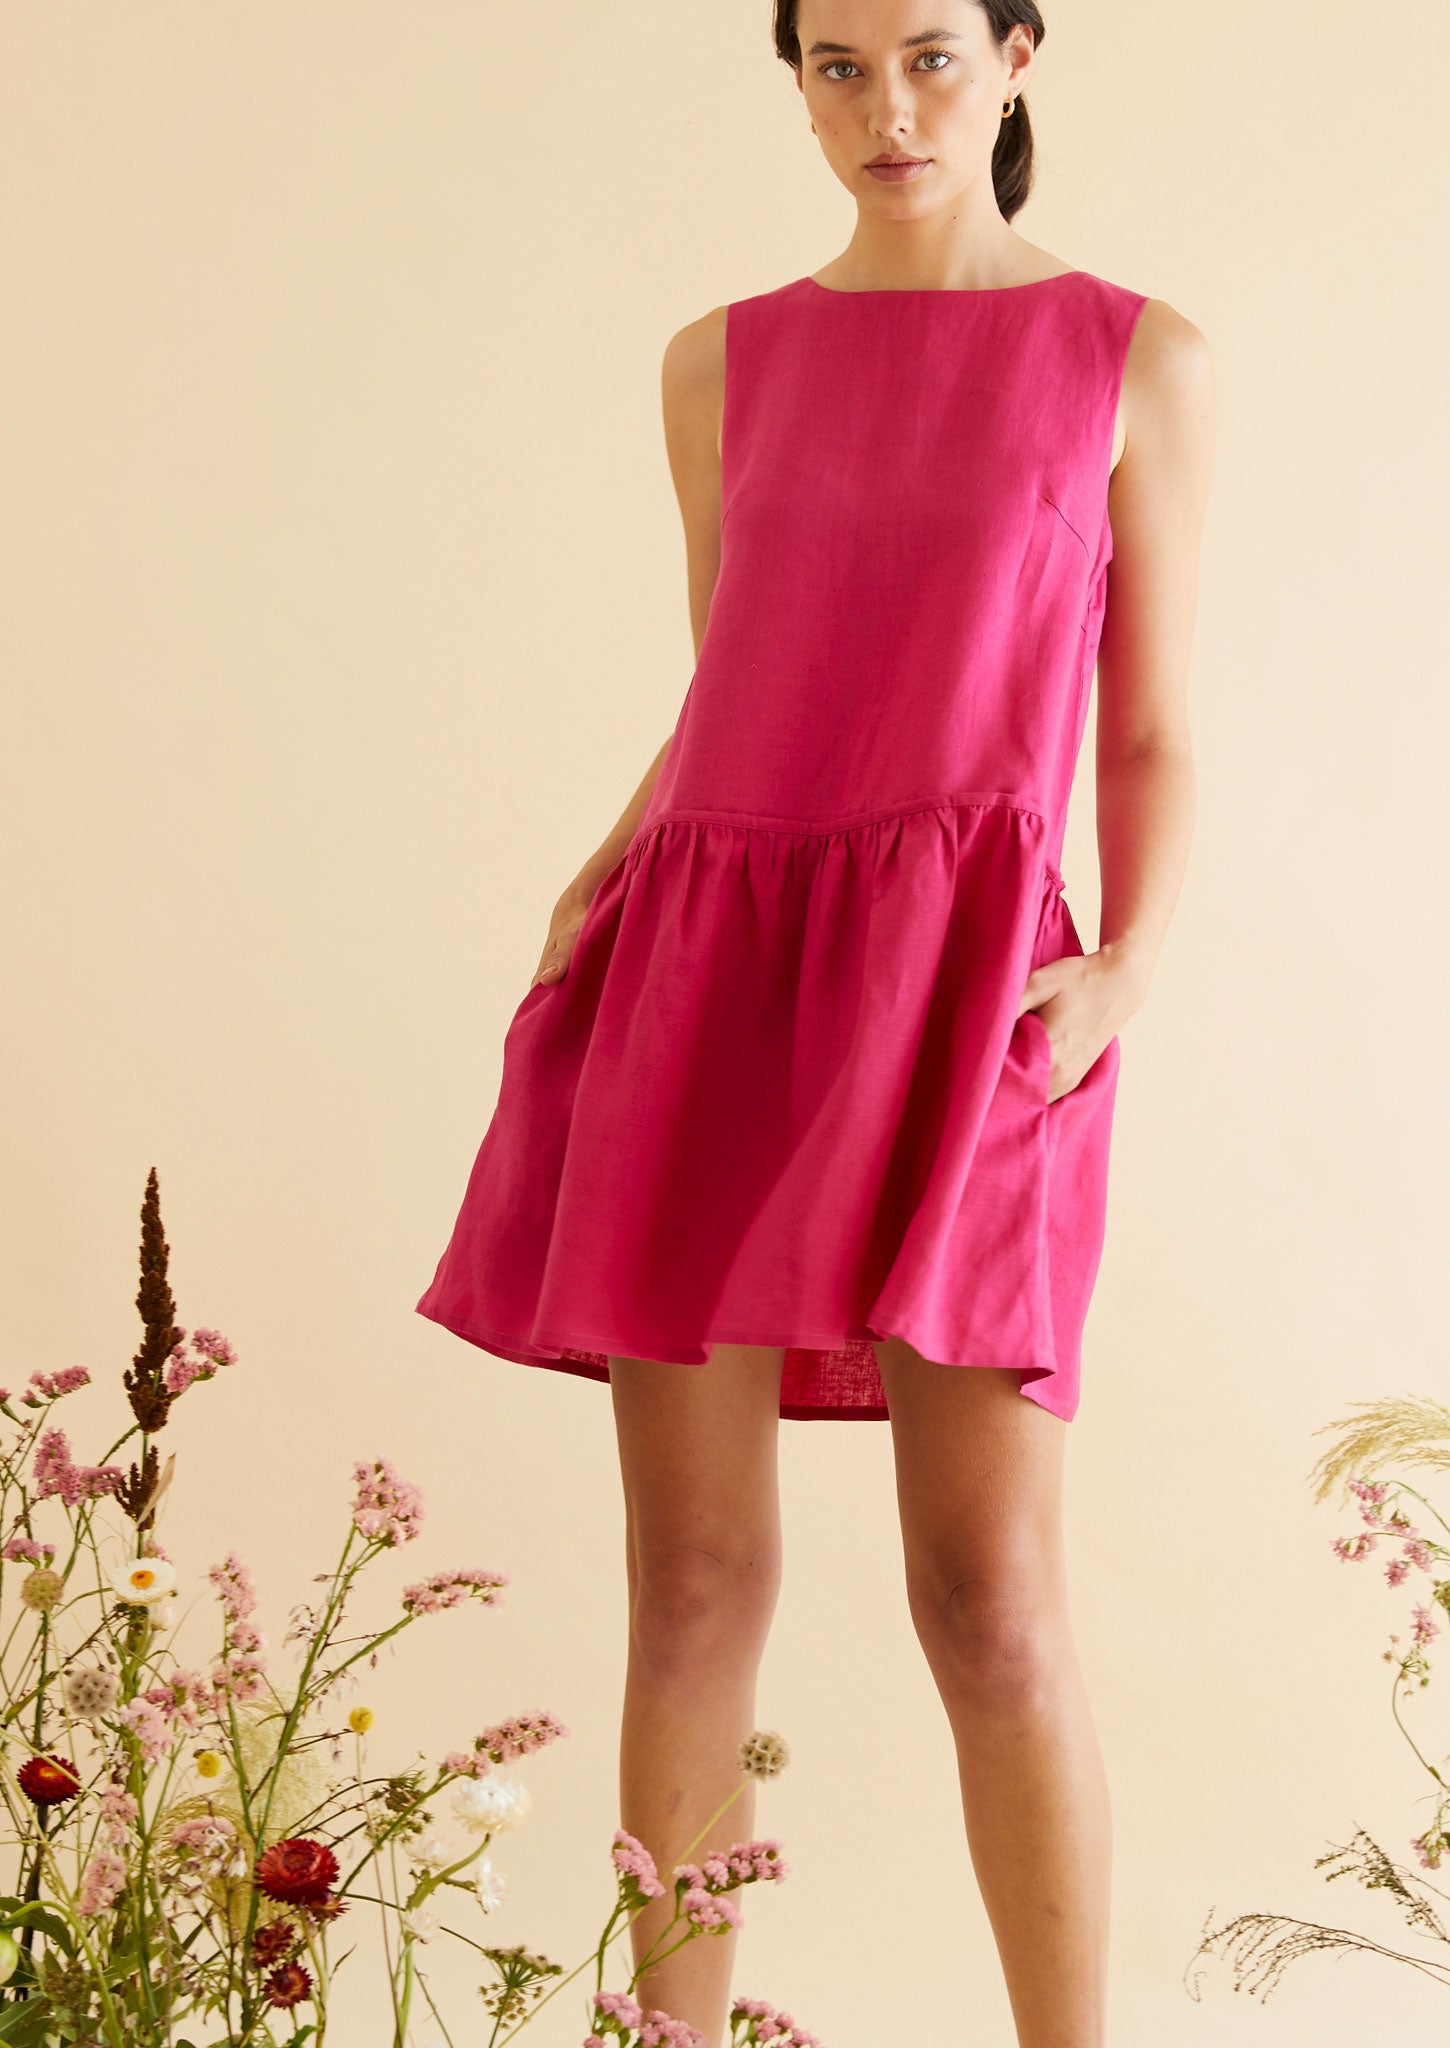 Ruffle Her Feathers in Hot Pink